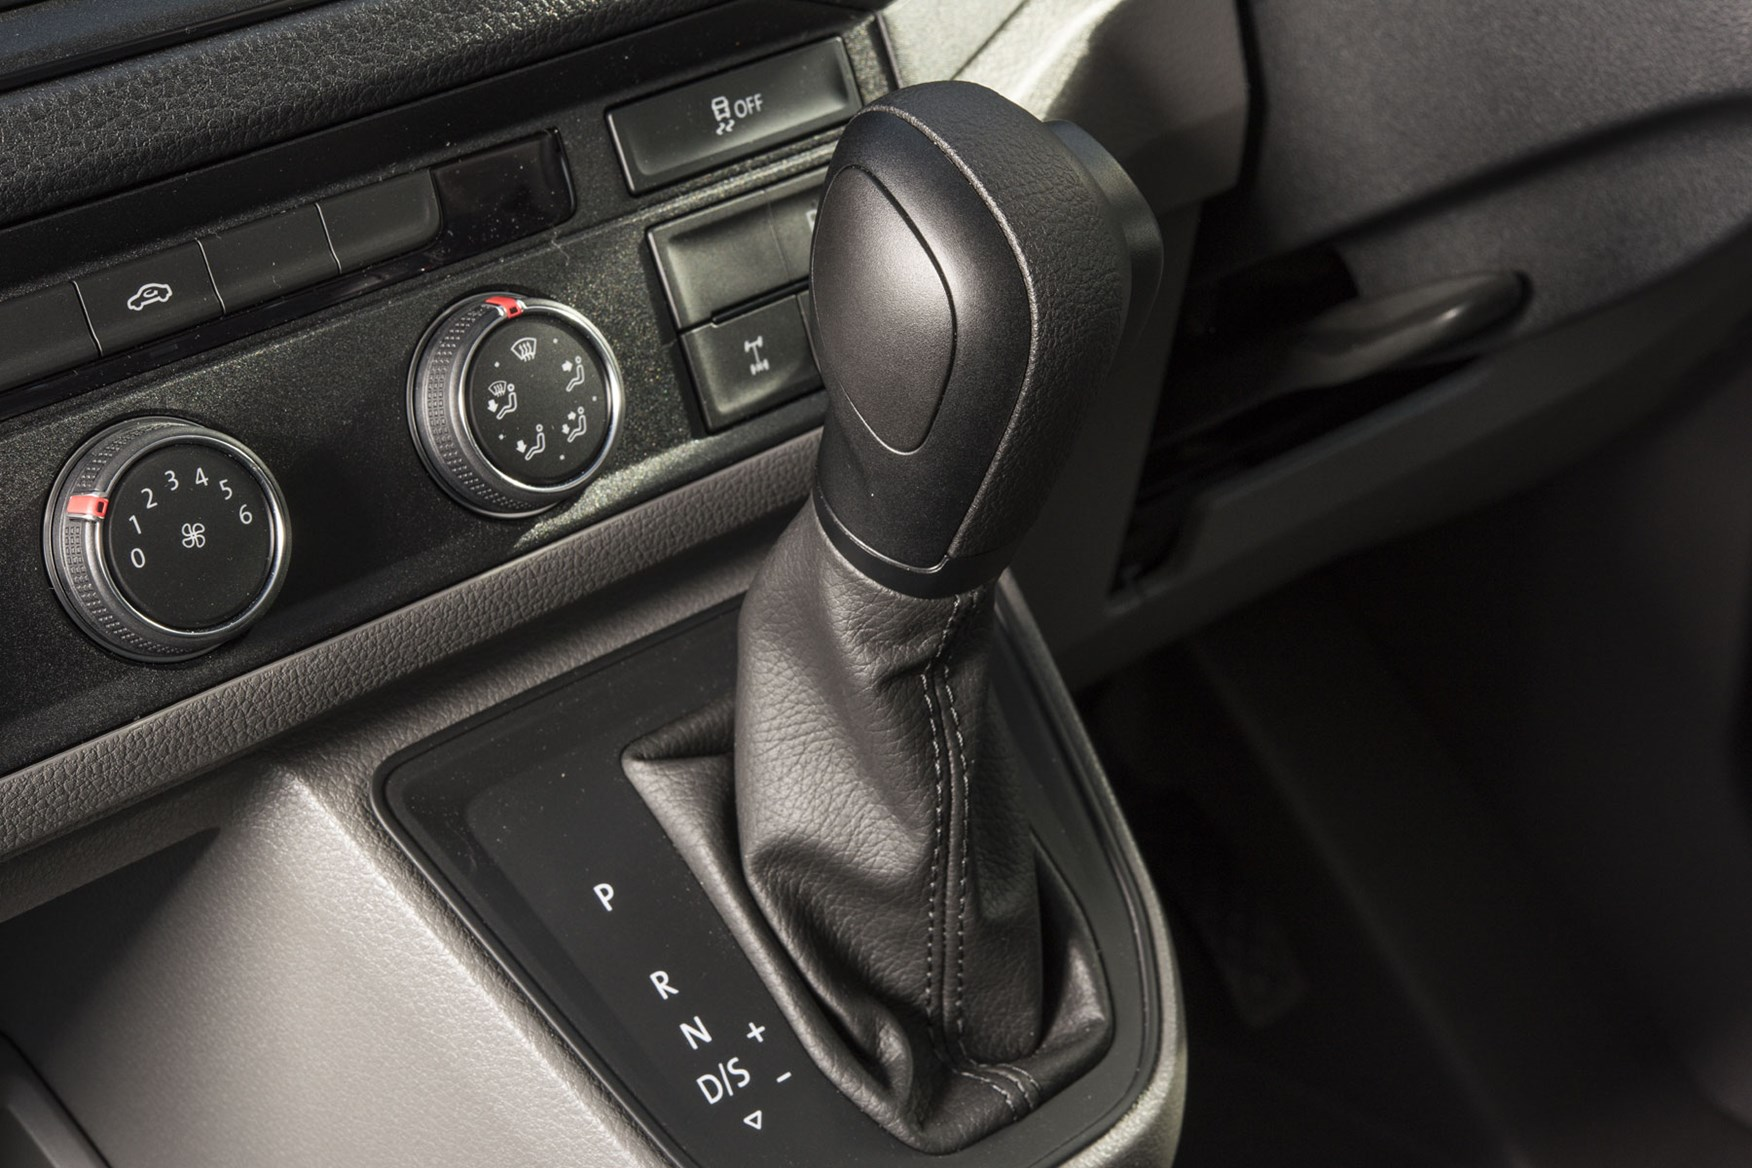 VW Crafter 4Motion review - eight-speed automatic gear selector